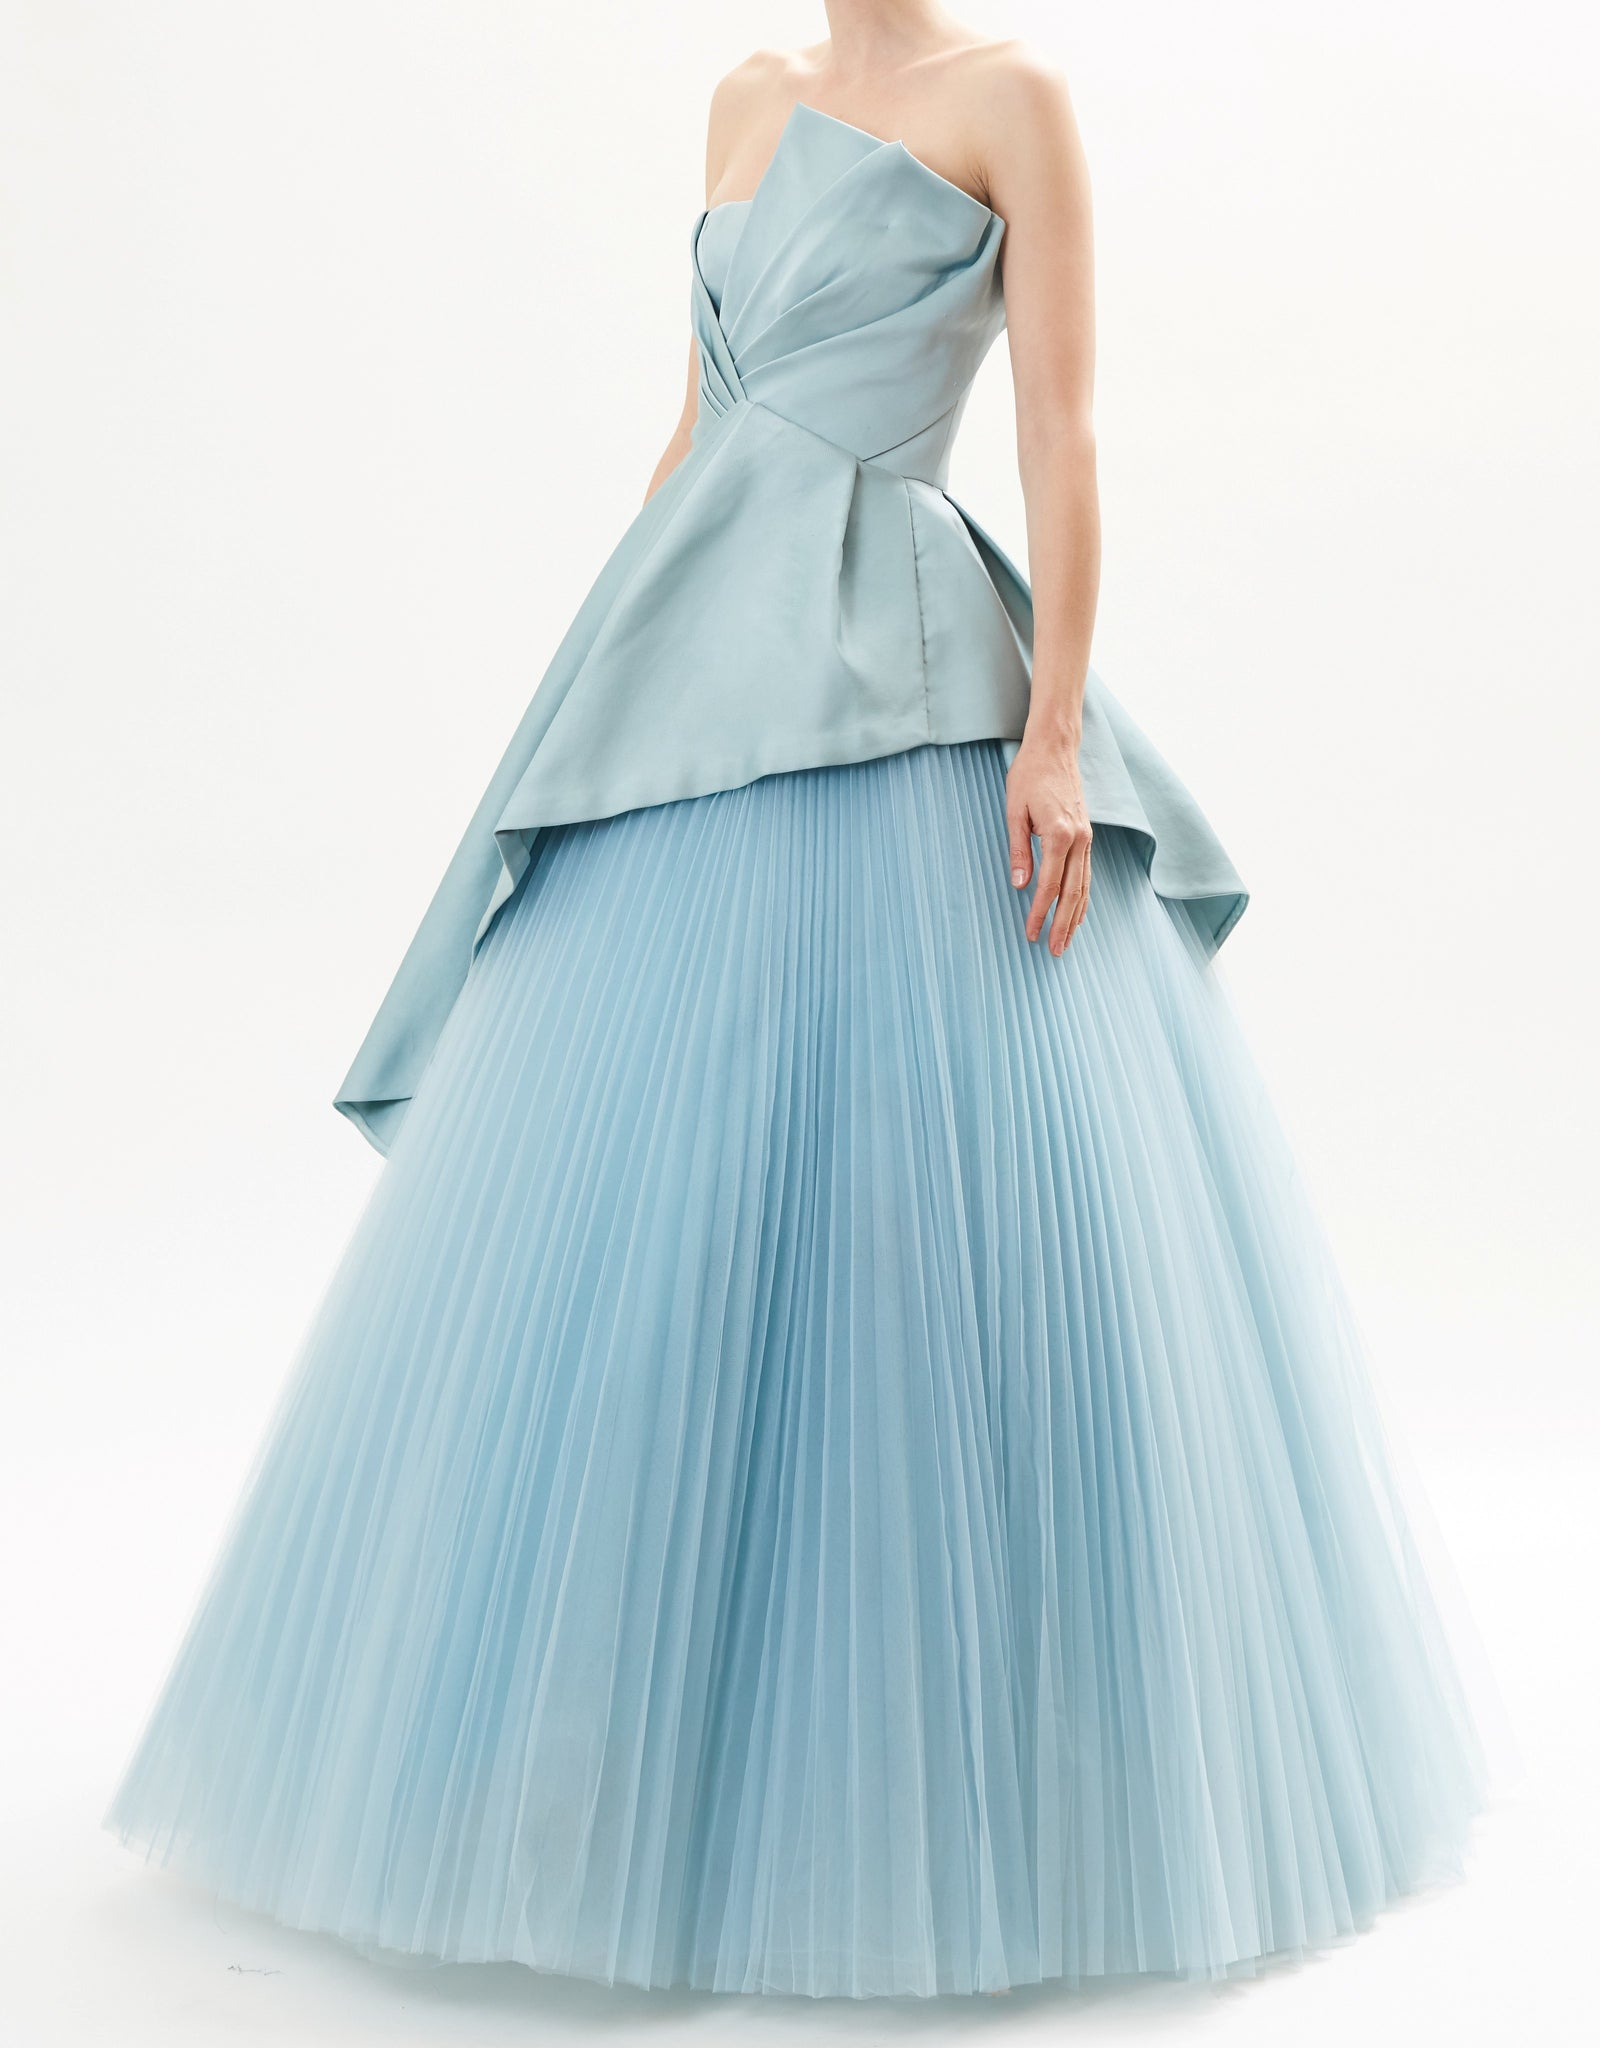 Pre-Order Mist Pointed Satin Bustier Top With Pleated Tulle Skirt